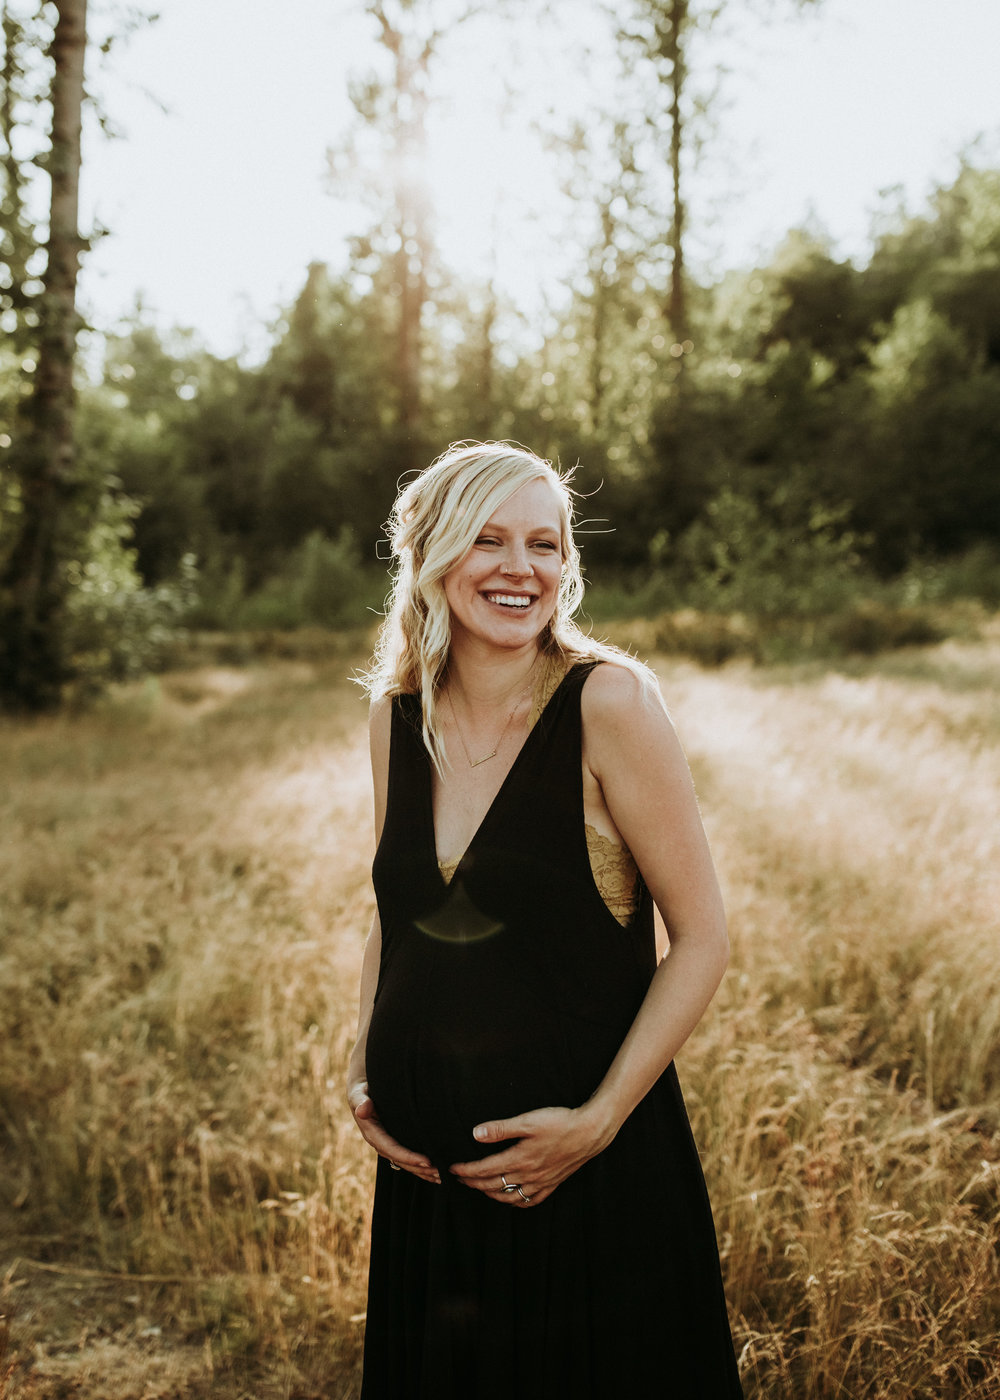 Maternity-Photographer-Bellingham-WA-Brianne-Bell-Photography-(Hummel)-34.jpg